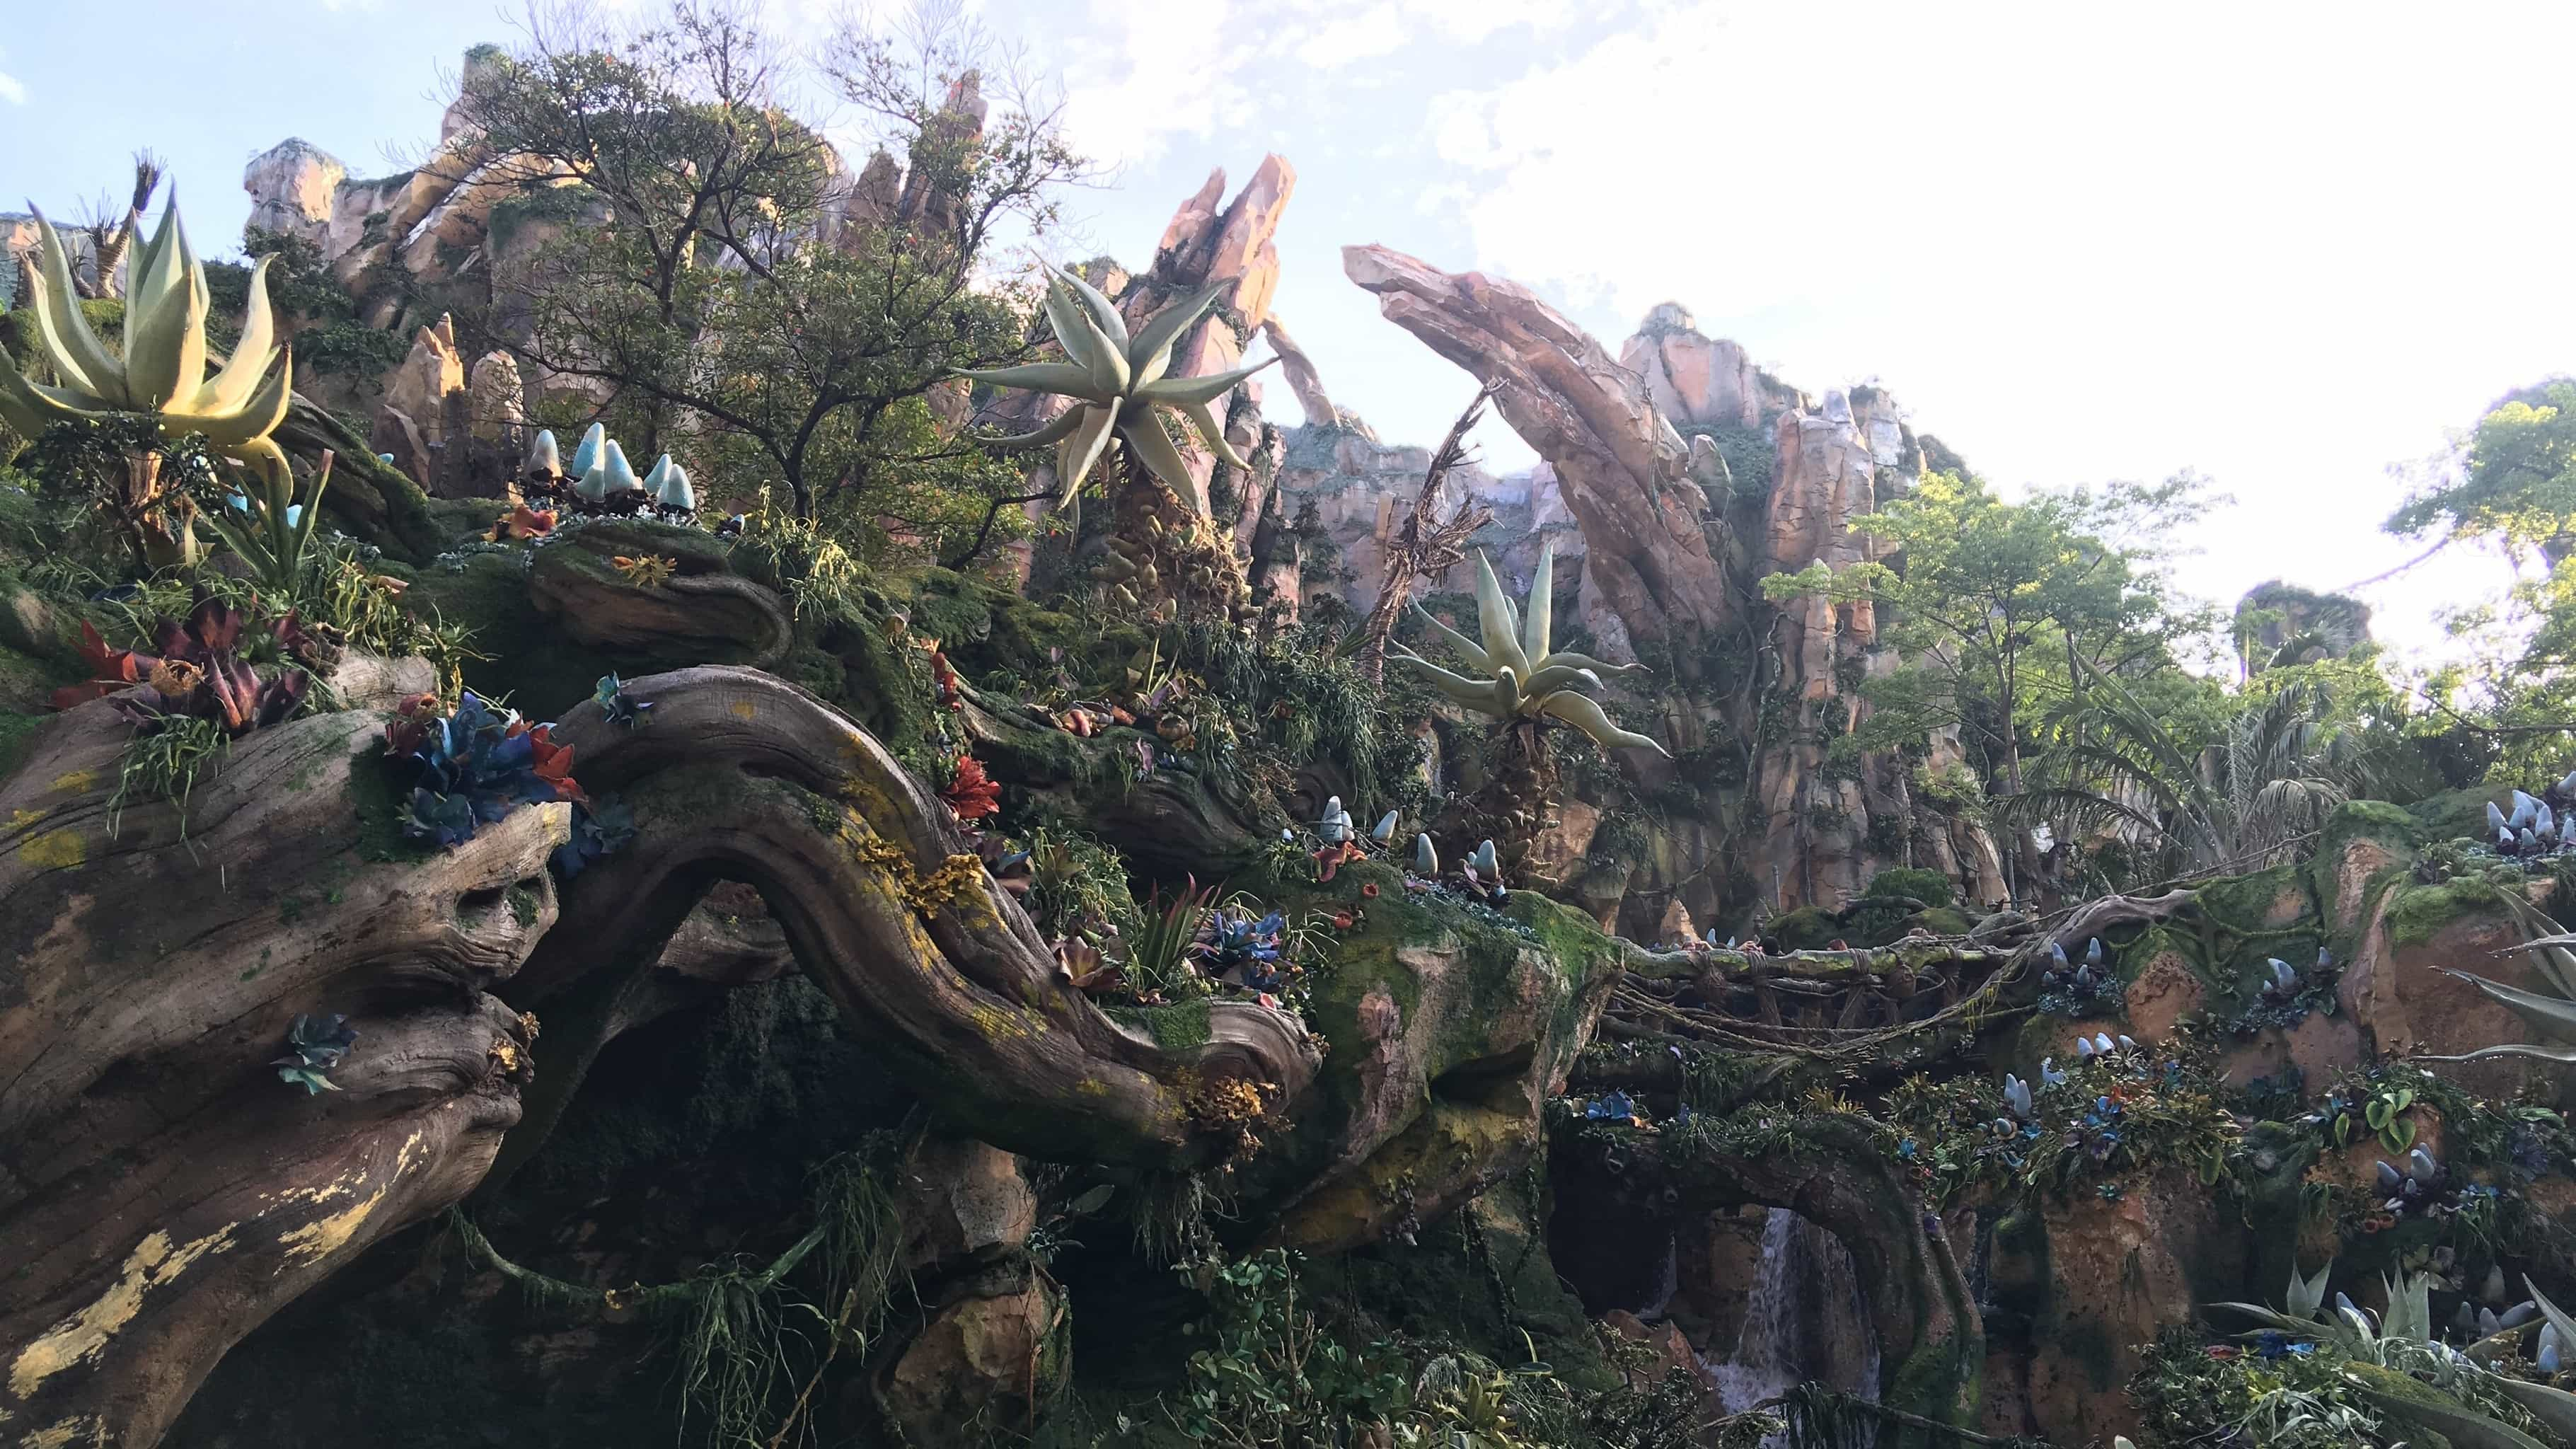 Preview the five senses of Pandora: The World of Avatar